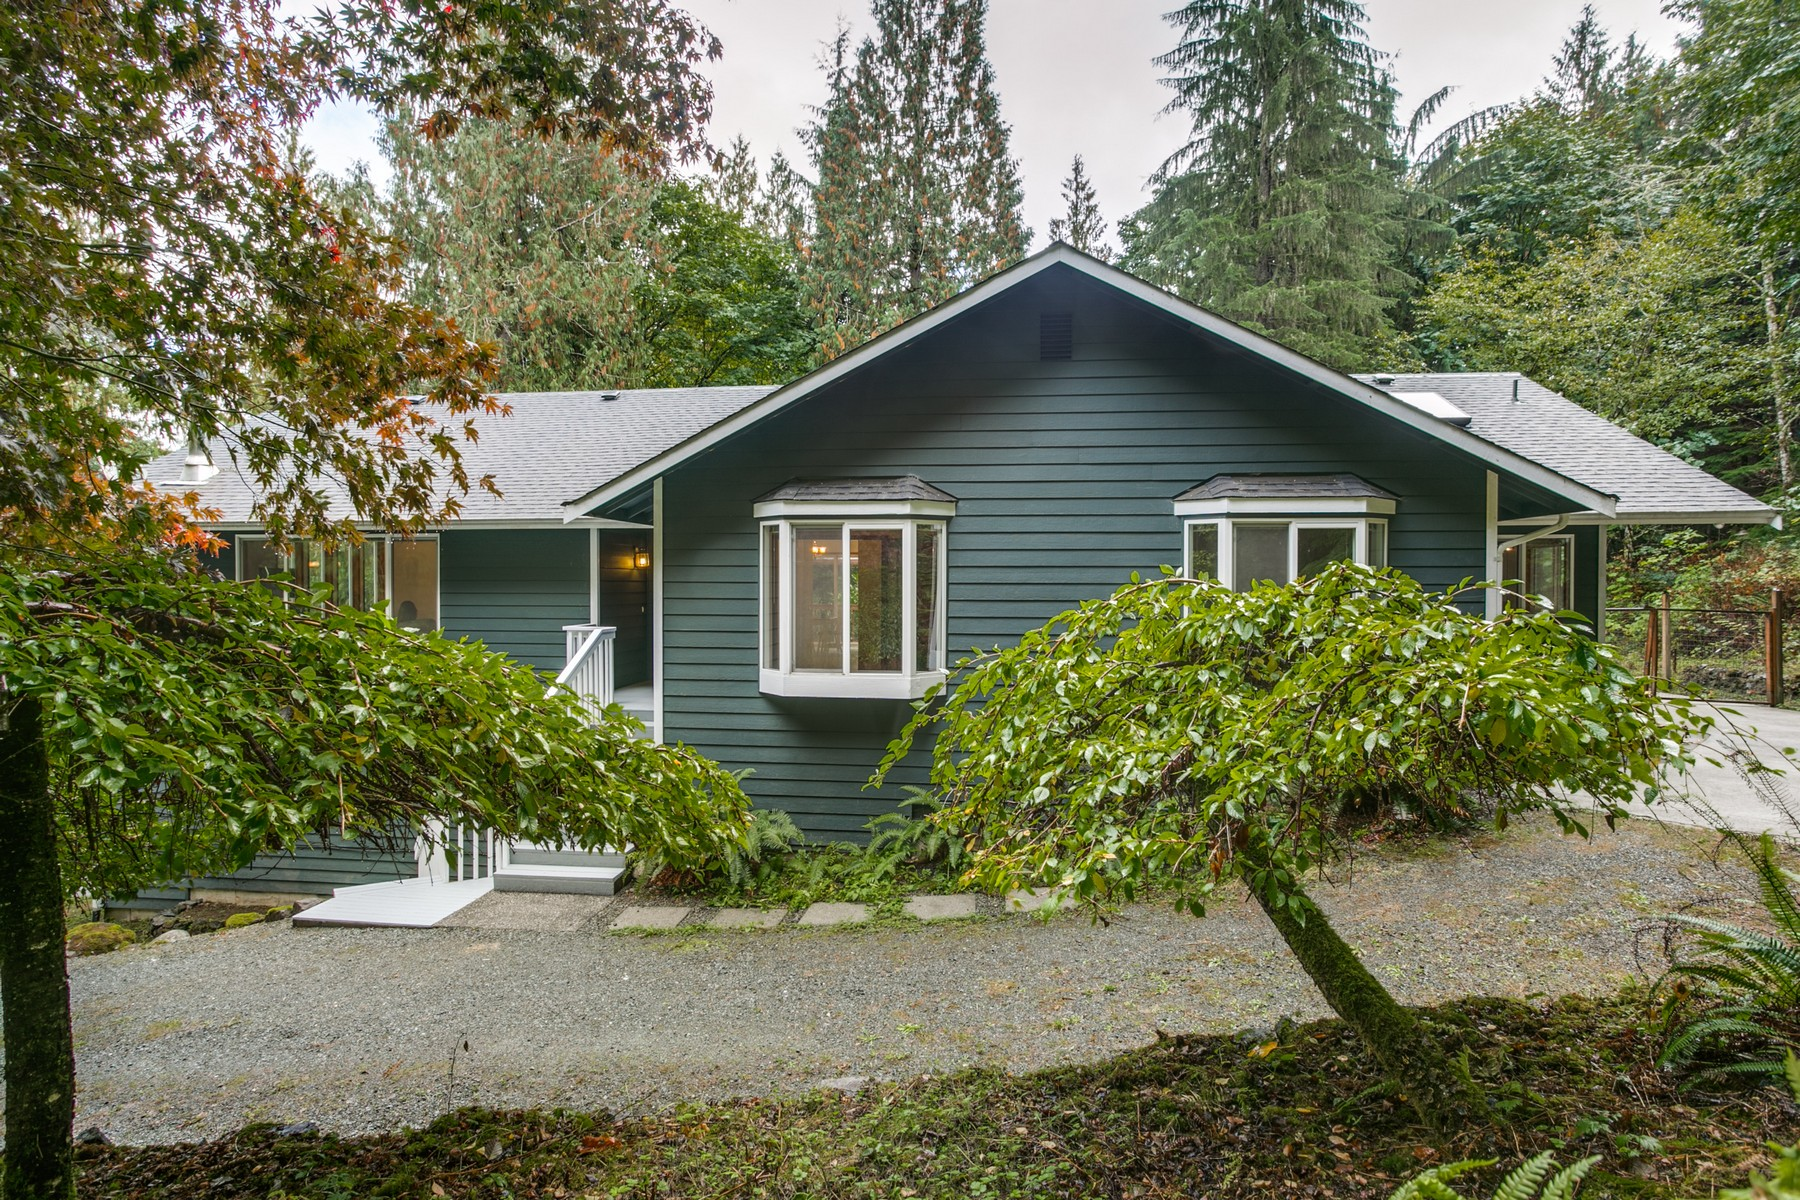 Single Family Home for Sale at Snohomish NW Contemporary 124 201st Ave NE Snohomish, Washington 98290 United States